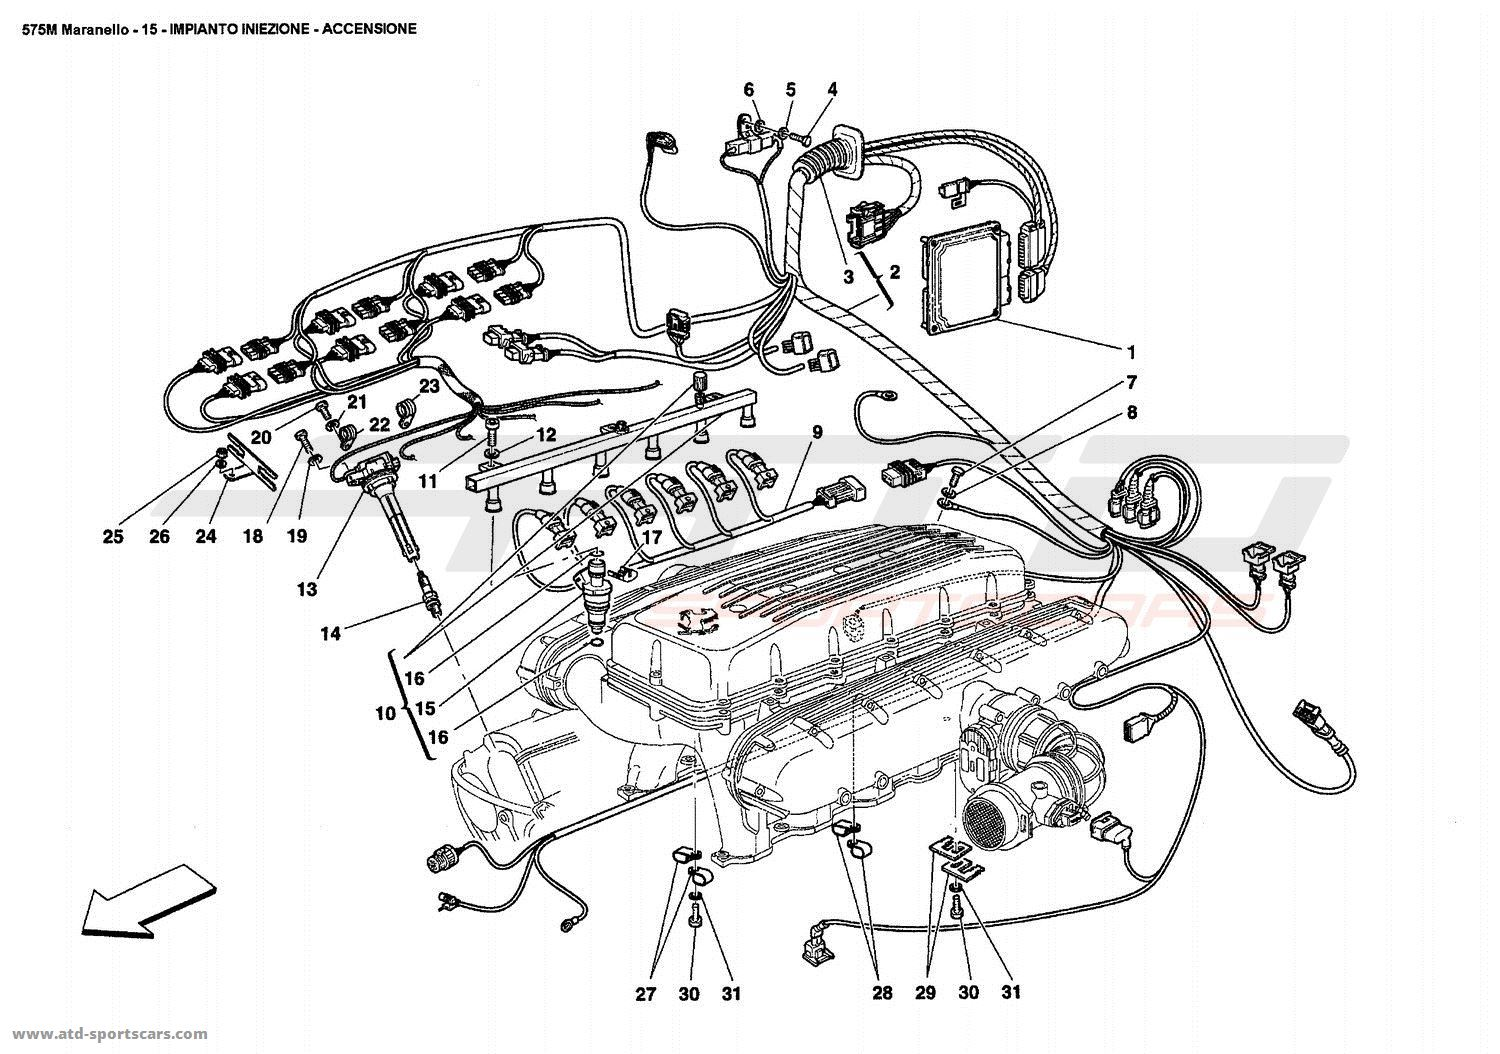 Ferrari 575 Maranello Engine Parts At Atd Sportscars